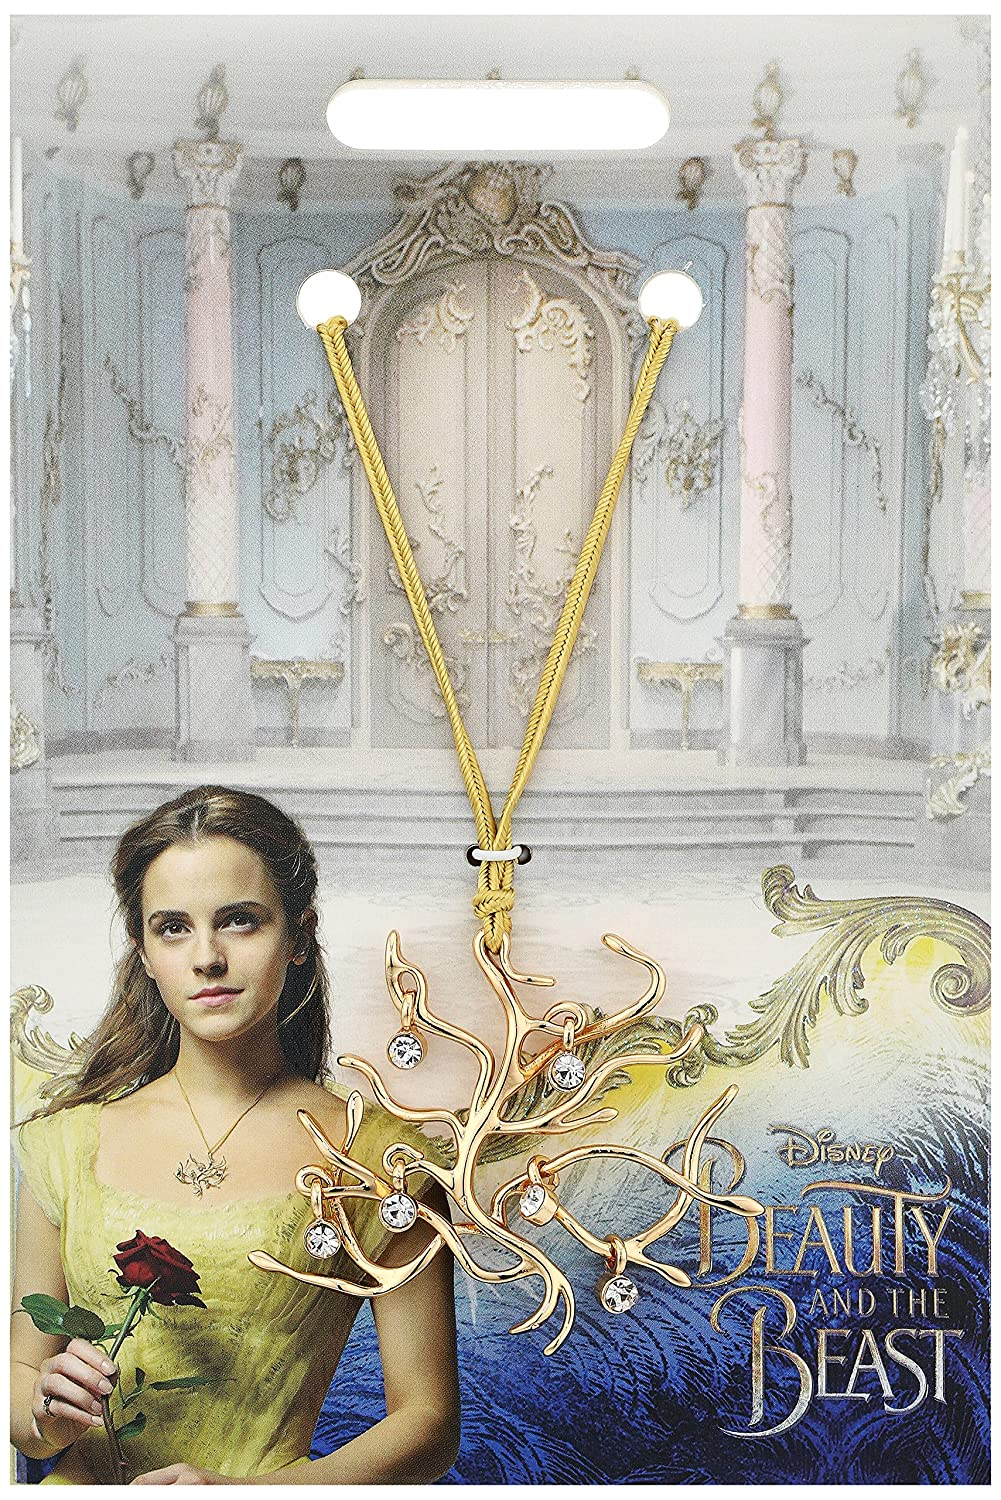 Disney Beauty and the Beast Official Movie Merchandise Tree of Life Pendant Necklace